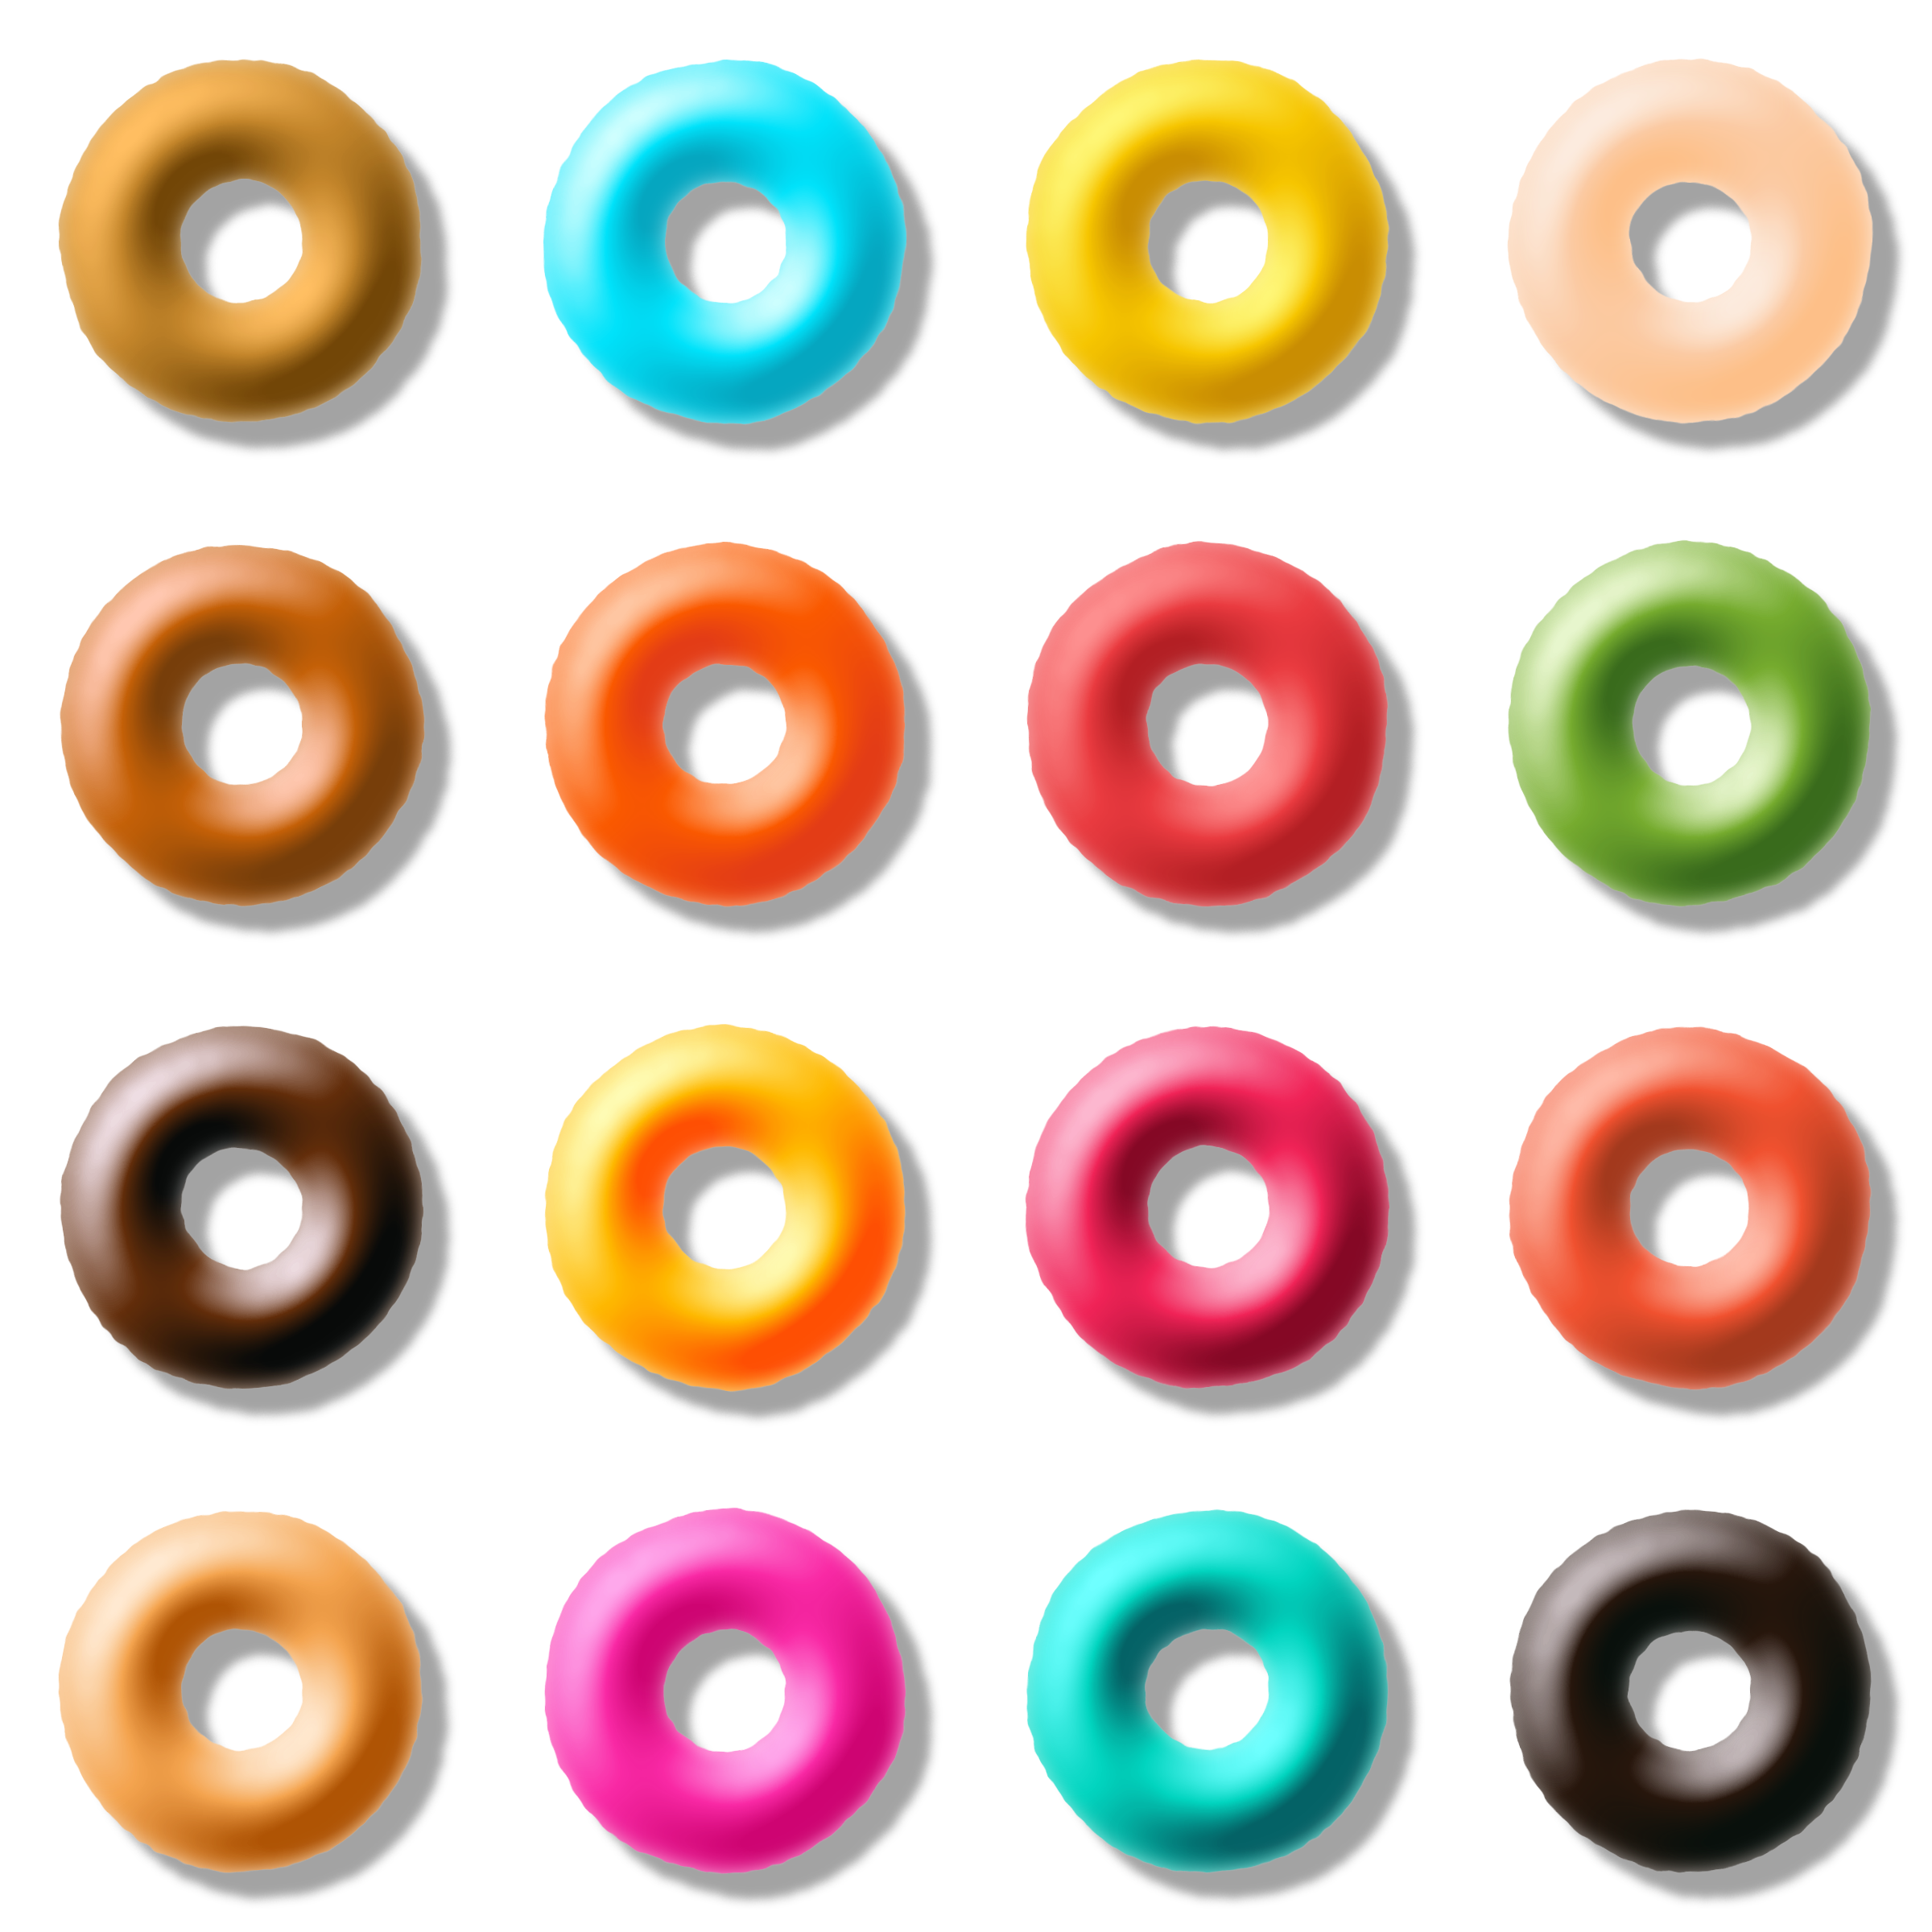 donut pack 3 by Lazur URH